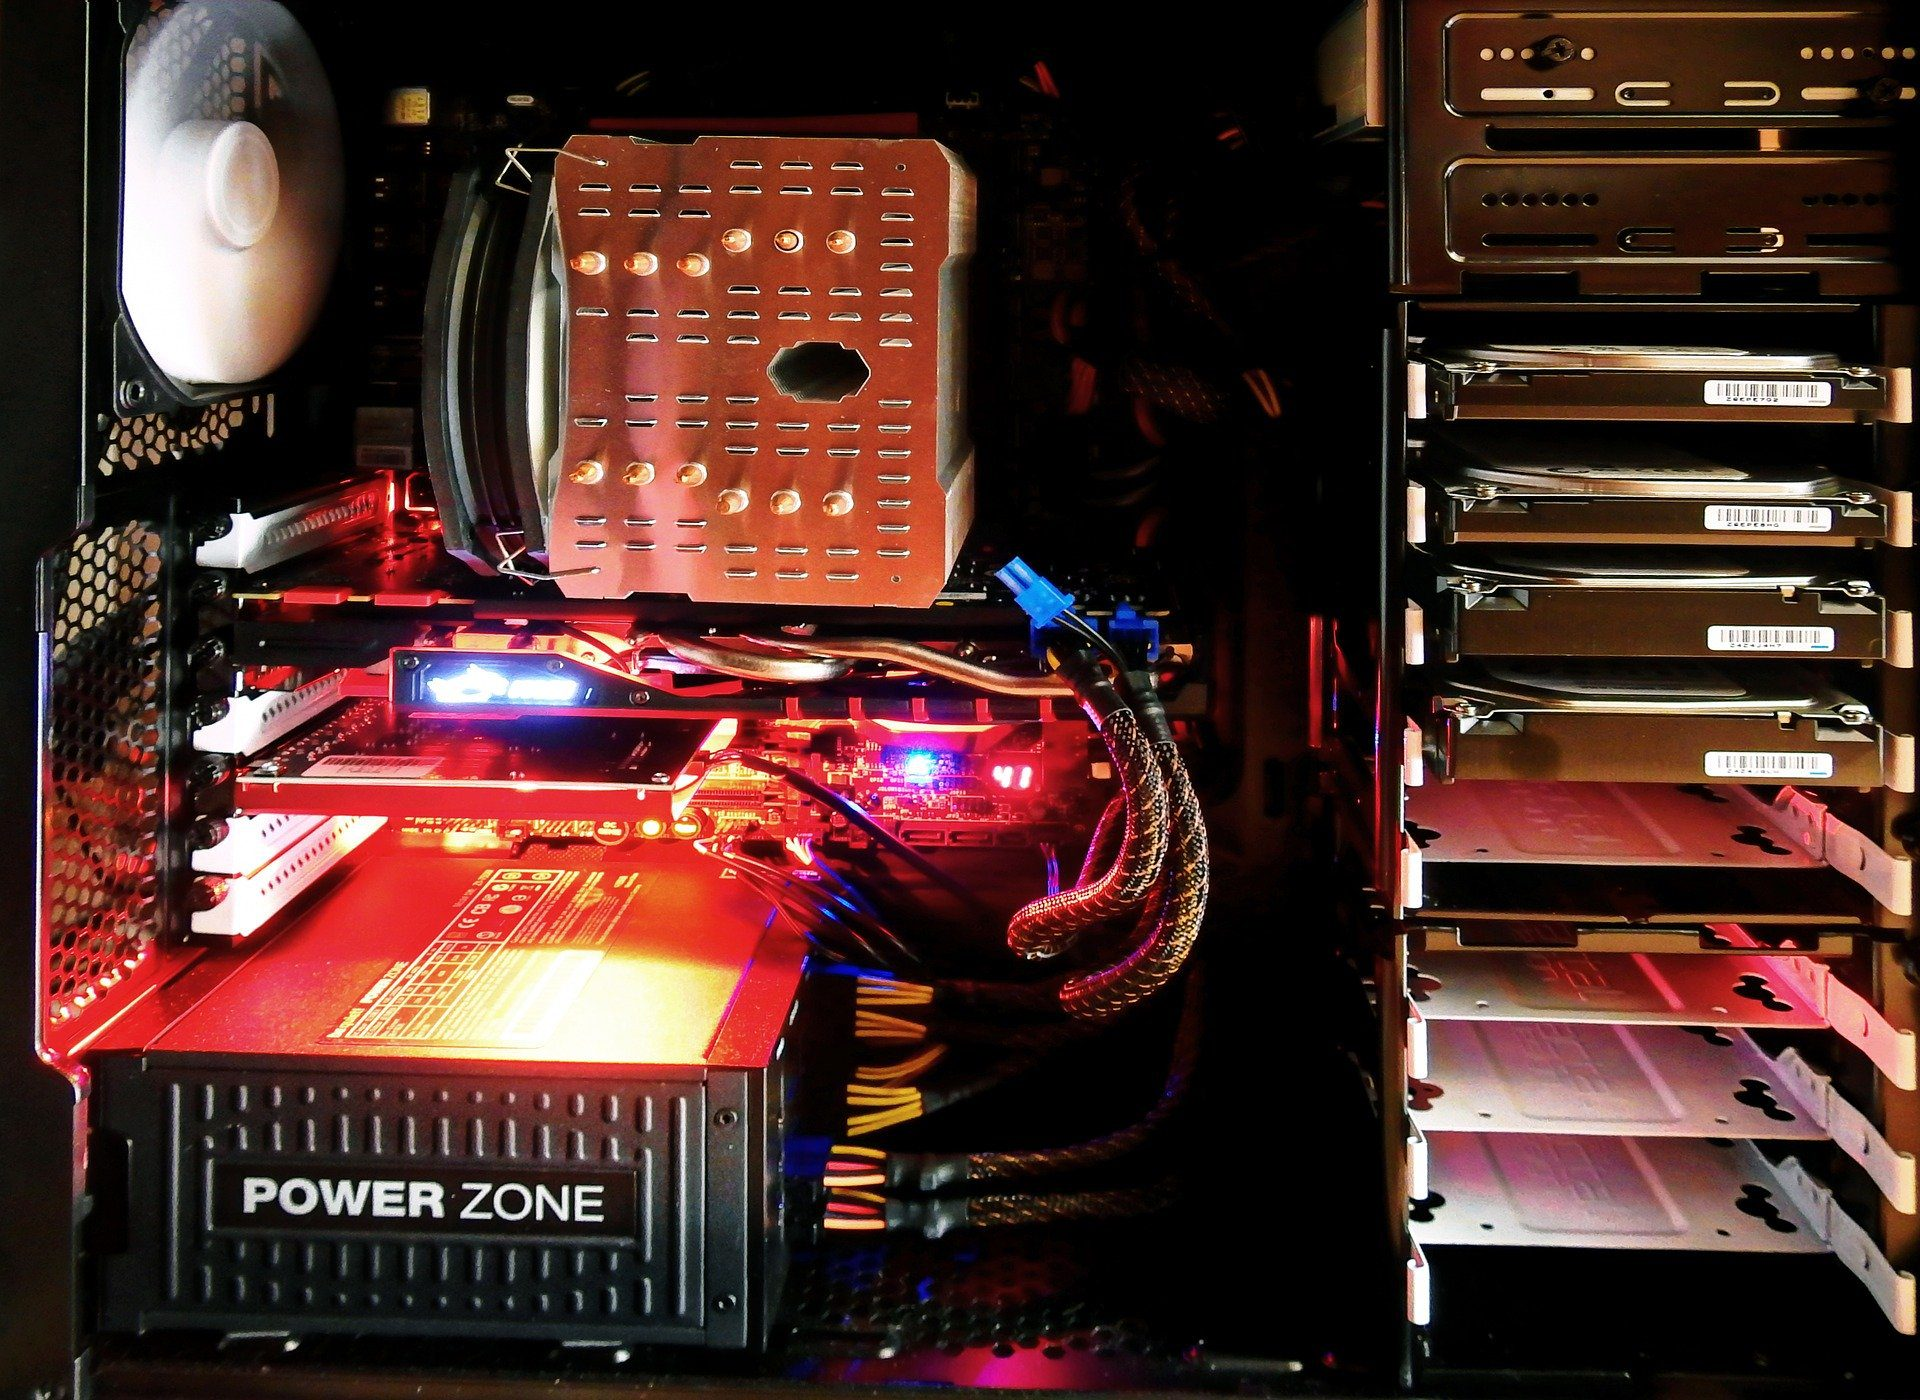 Surprising High-Quality Web Hosting Service for A Super Low-Cost